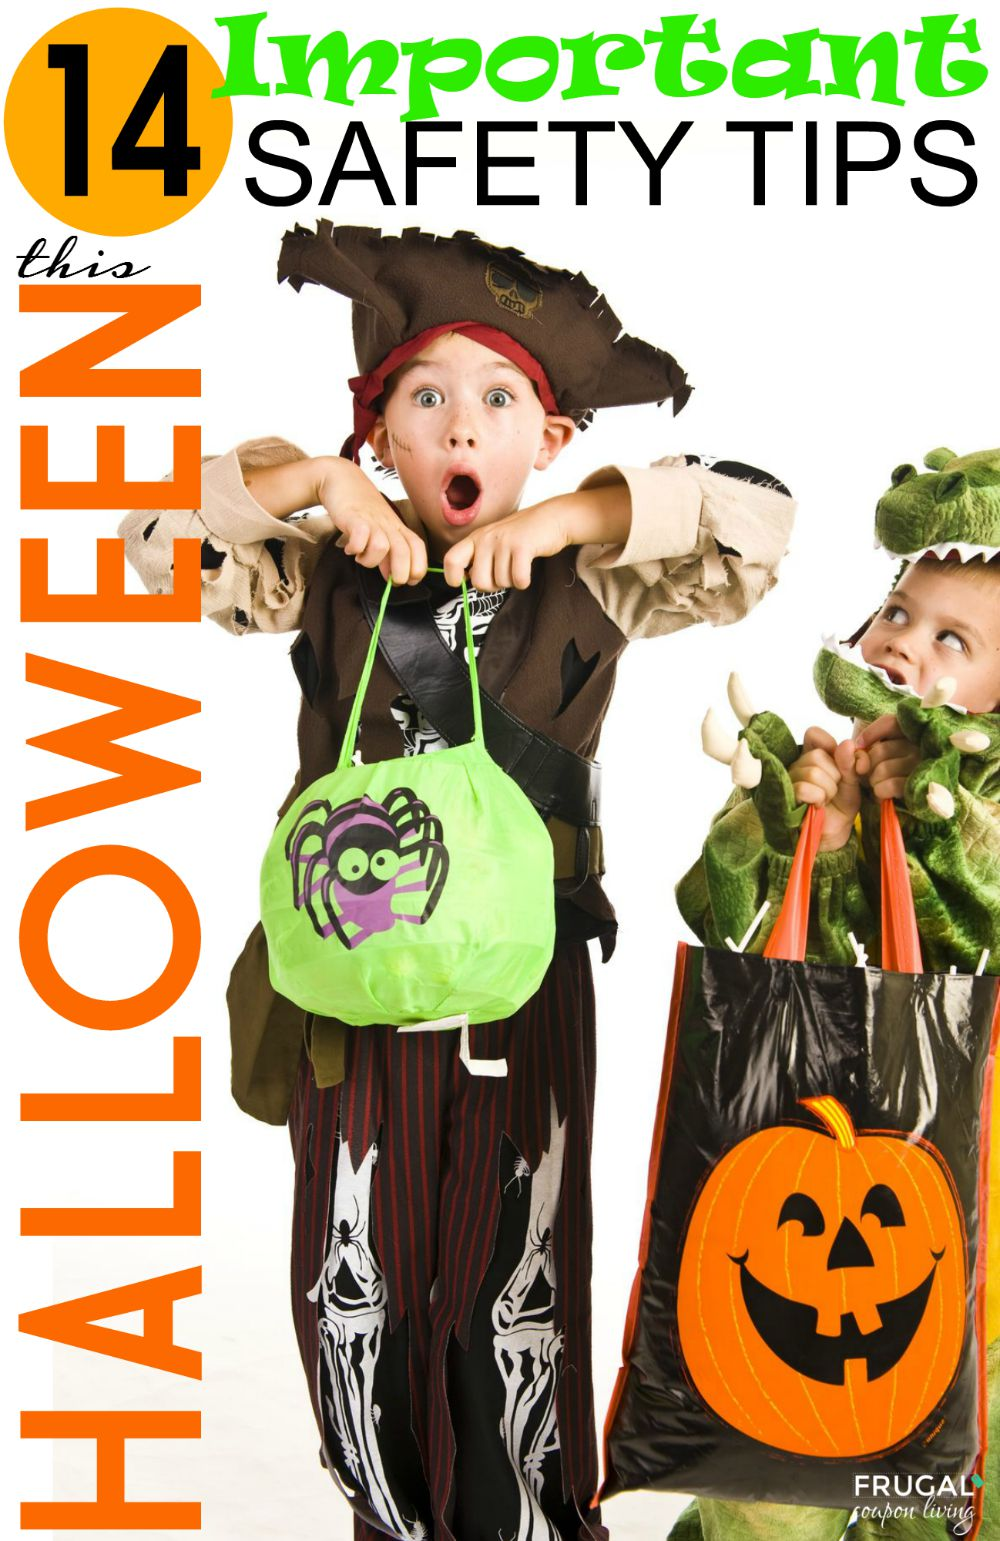 Halloween Safety Tips on Frugal Coupon Living